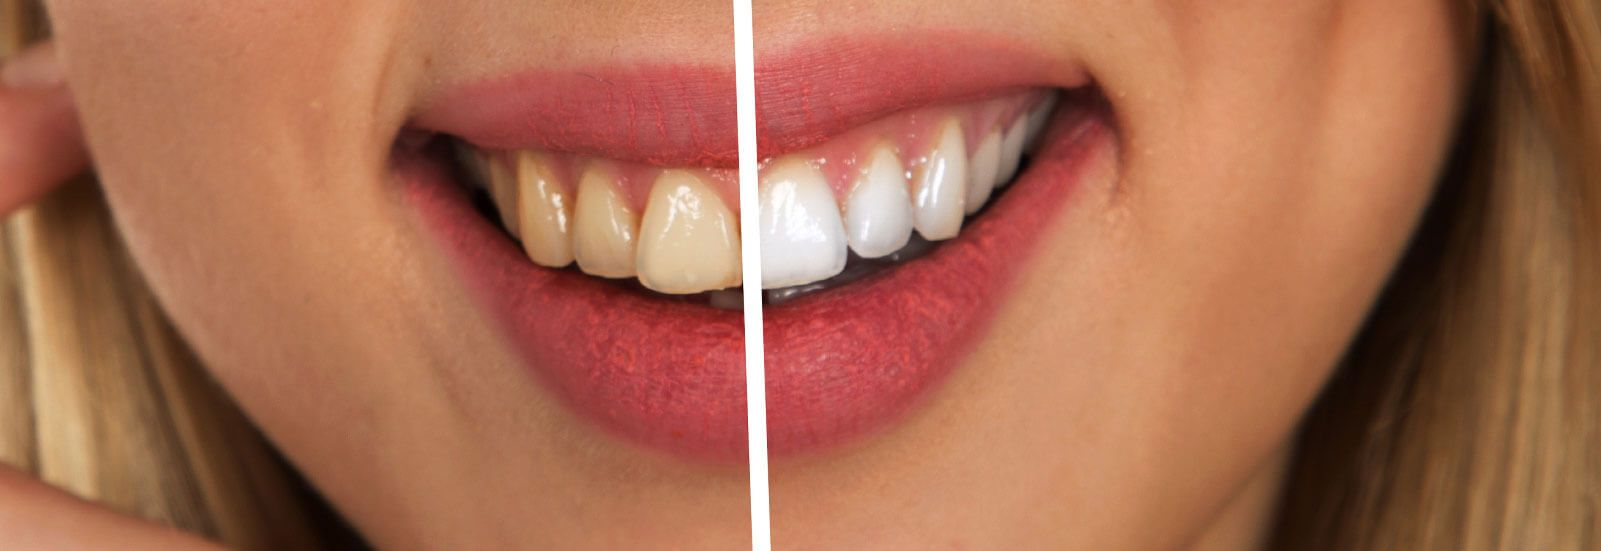 Before and after Dentist in Centurion